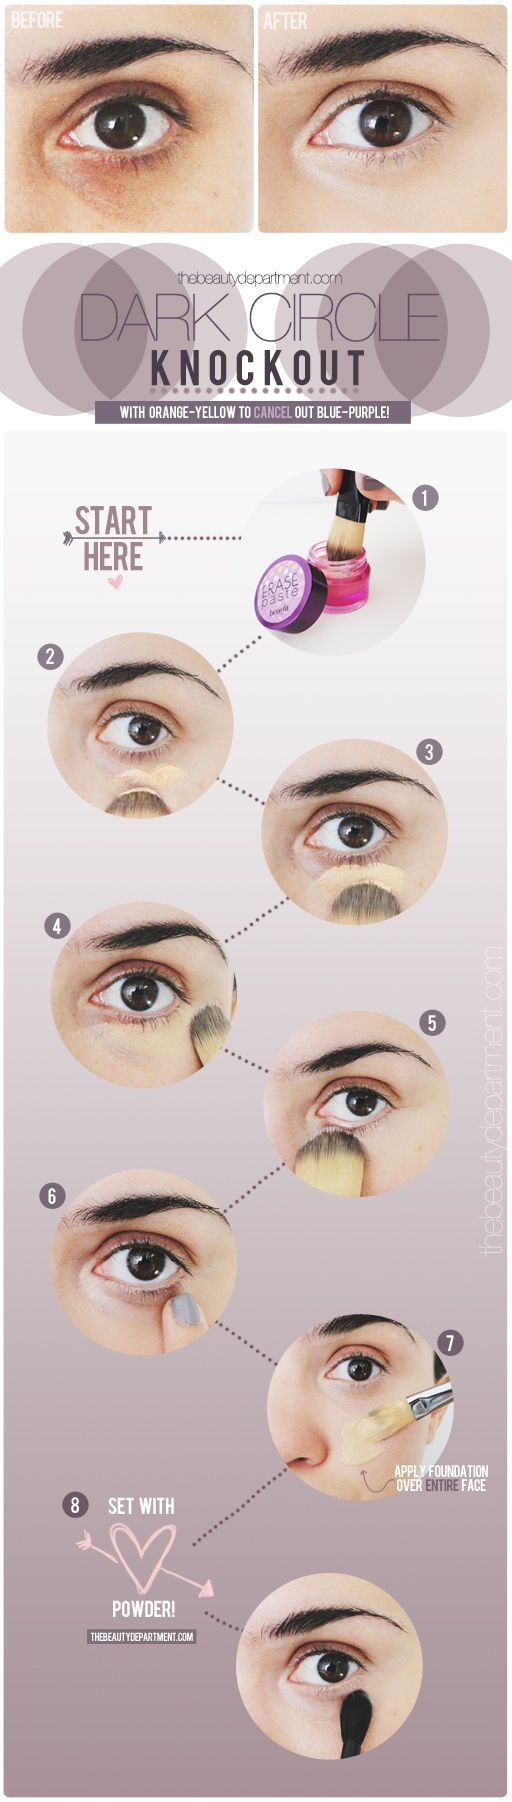 Makeup Under-Eye Correction ........ Here is a tutorial to  cover dark circles, tackling the darkest of dark circles with the help of the color correction..... Read more.....